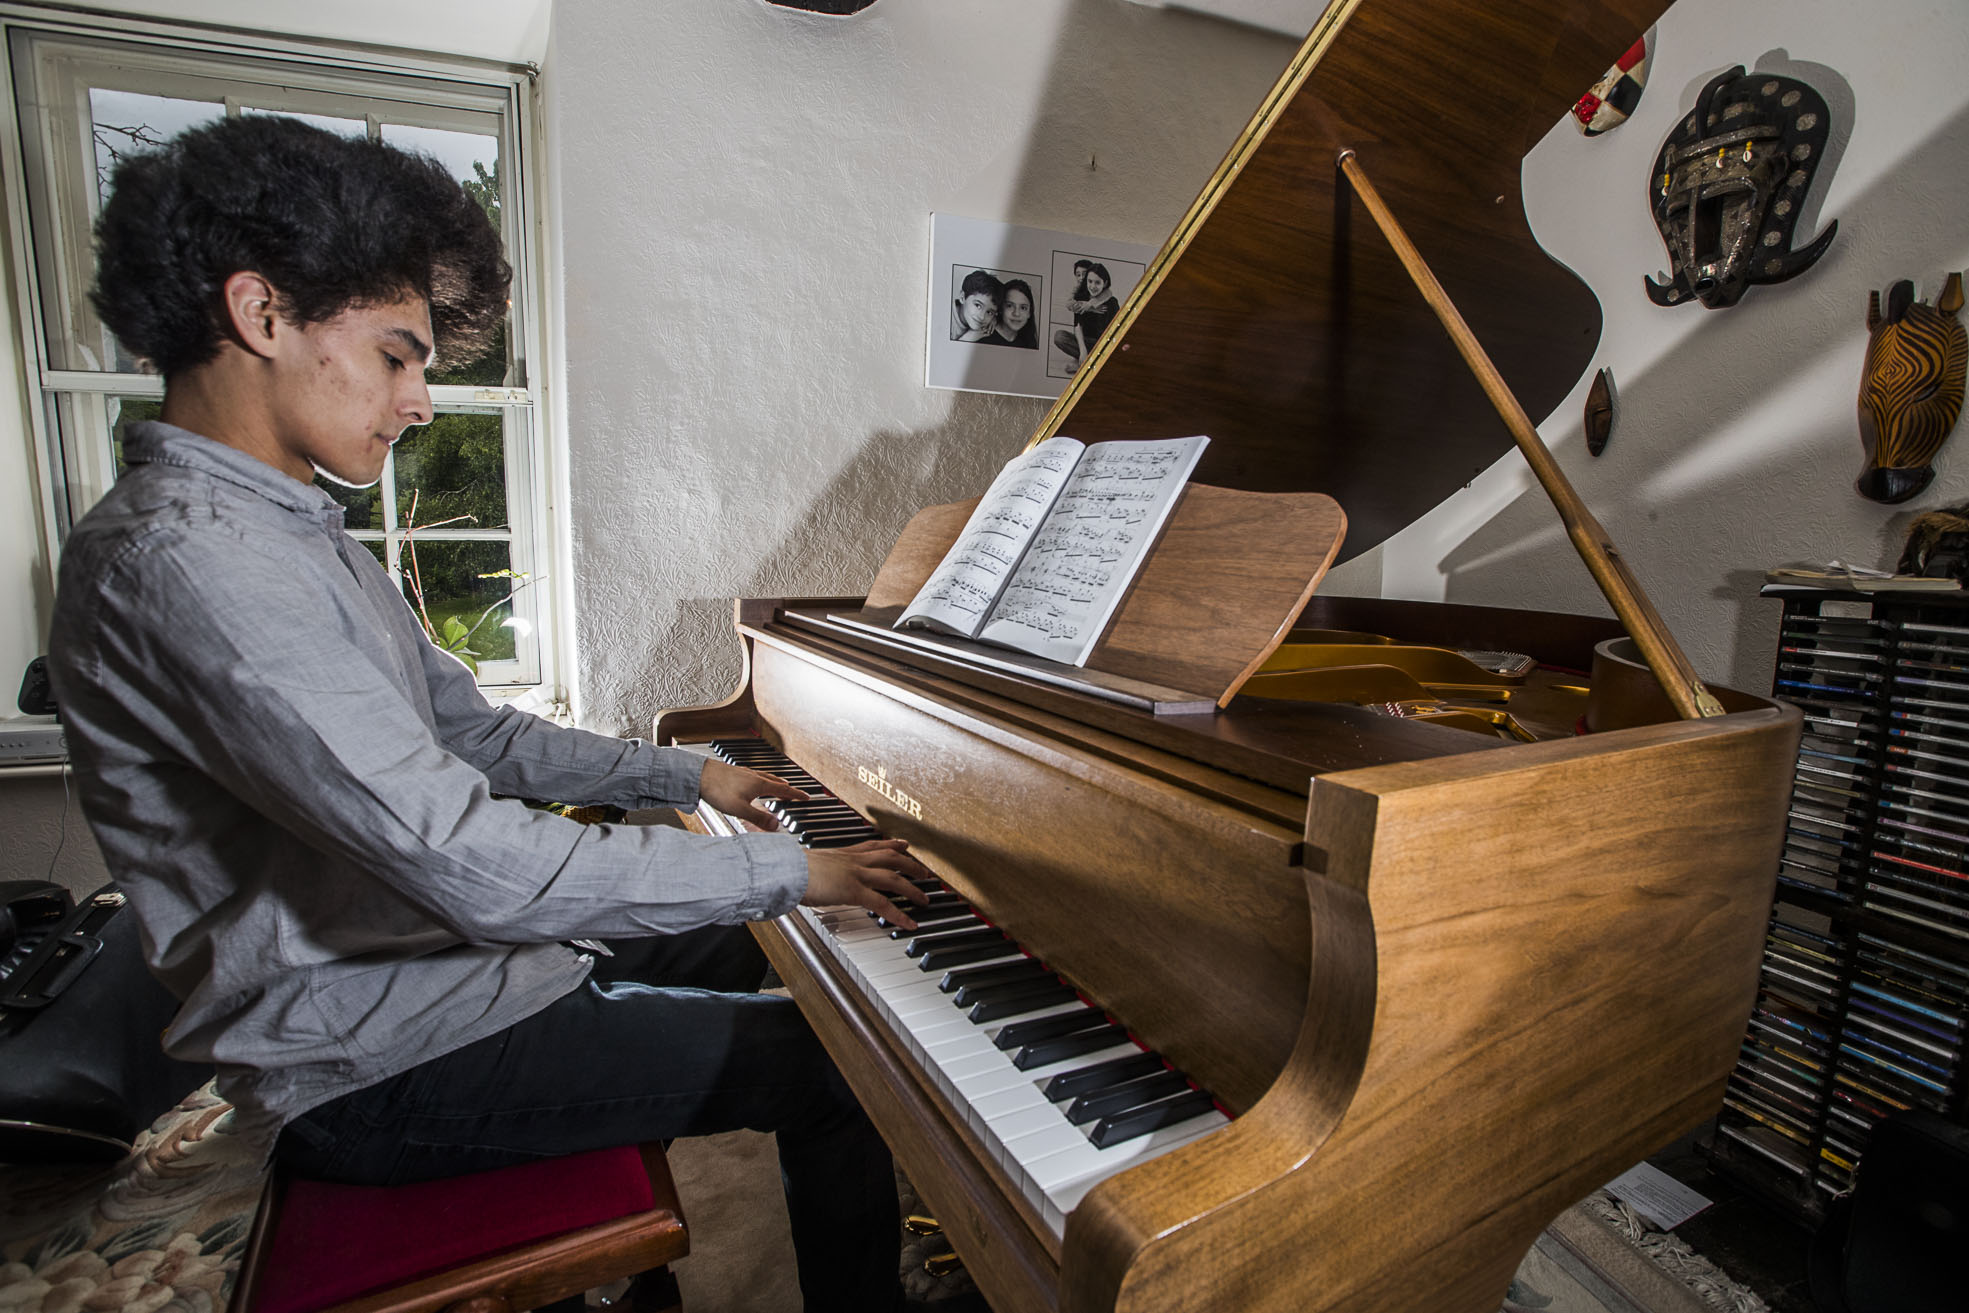 Piano prodigy to perform just hours after his A-level maths exam